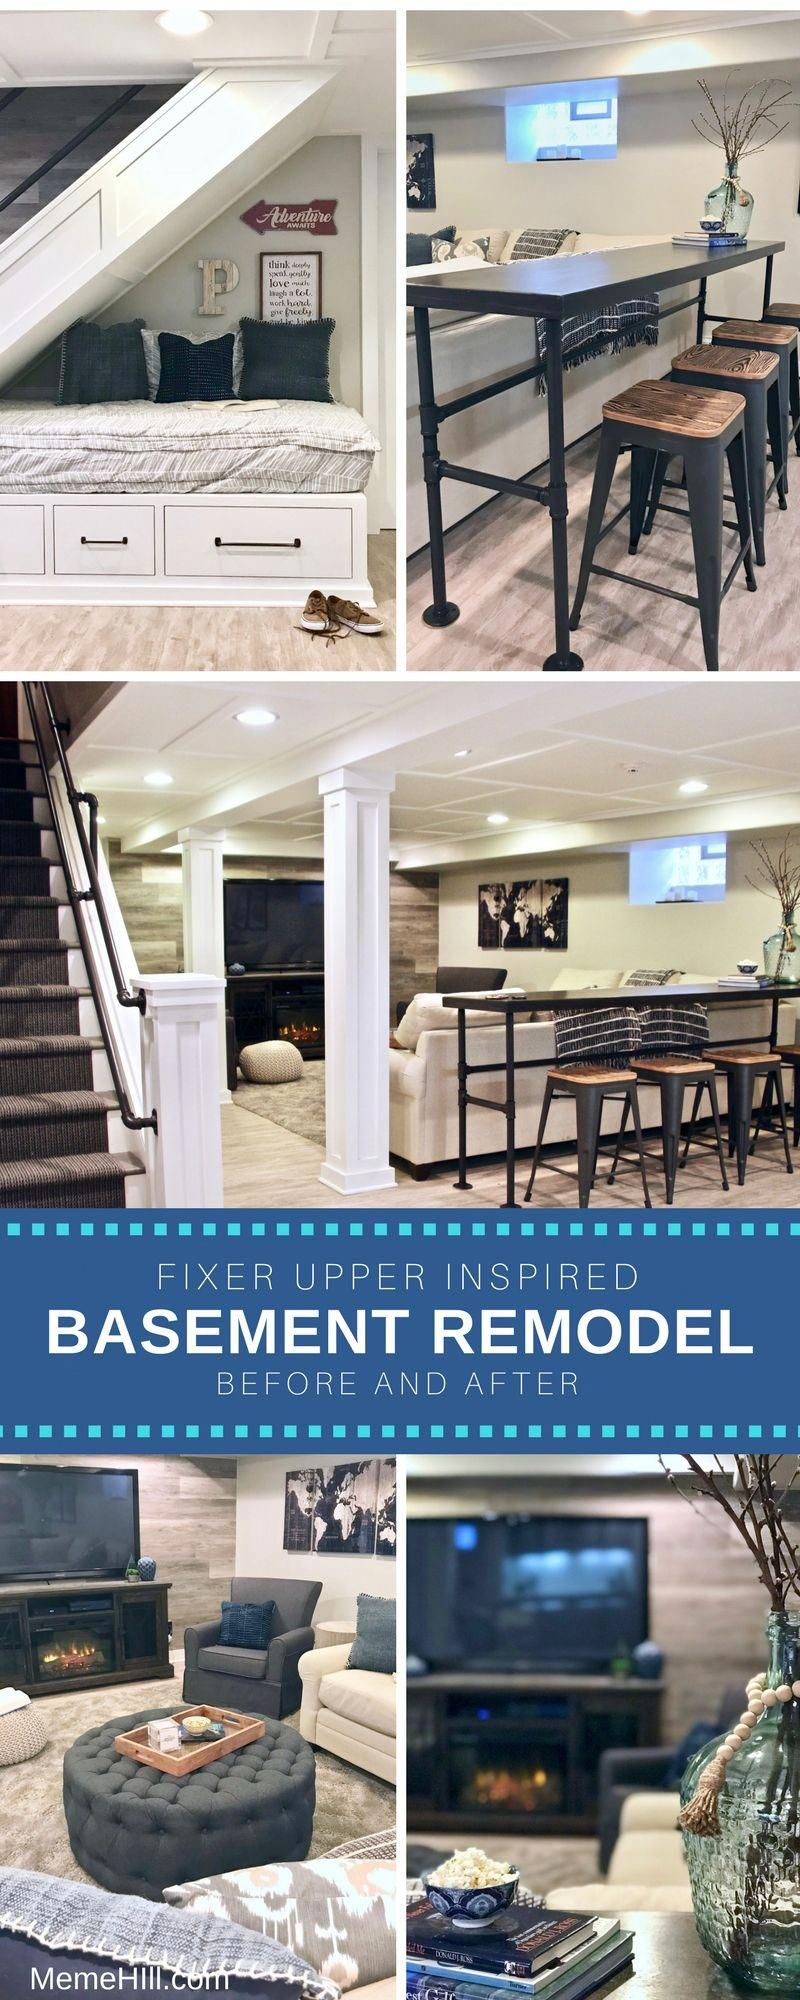 Basement_renovation_meme_hill_fixer_upper_remodel_rustic Basement Family  Rooms, Basement Ideas, Rustic Basement, Basement Apartment, Basement  Inspiration